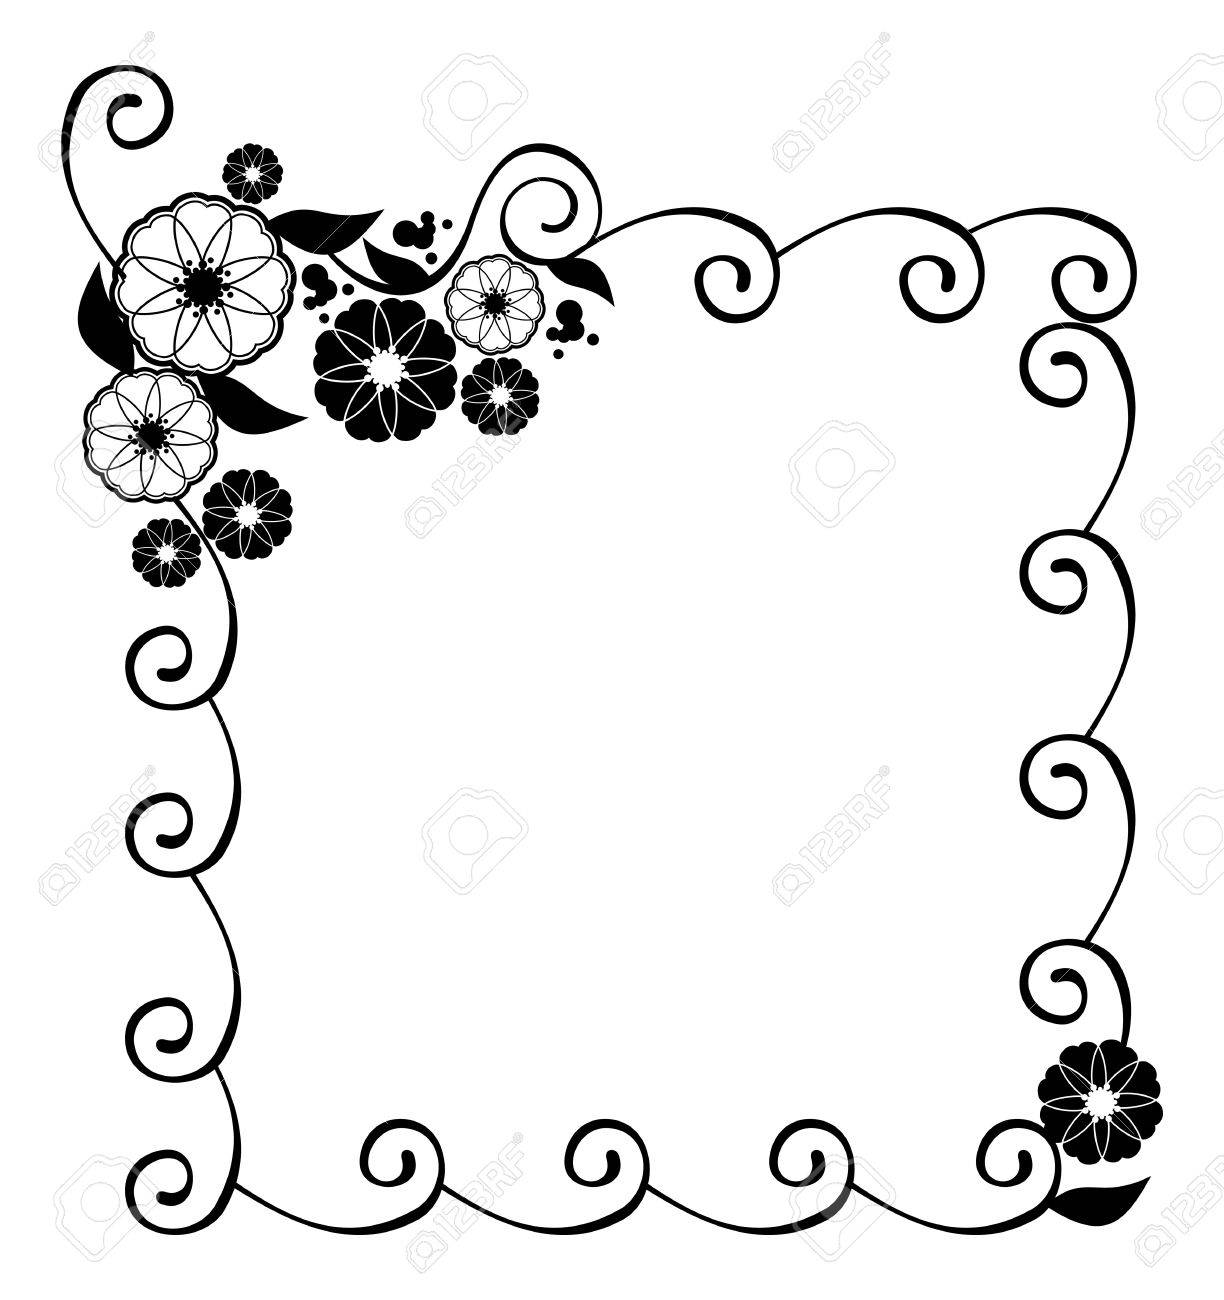 flower frame decorative black and white frame with floral elements rh 123rf com decorative simple frame clipart decorative oval frame clipart